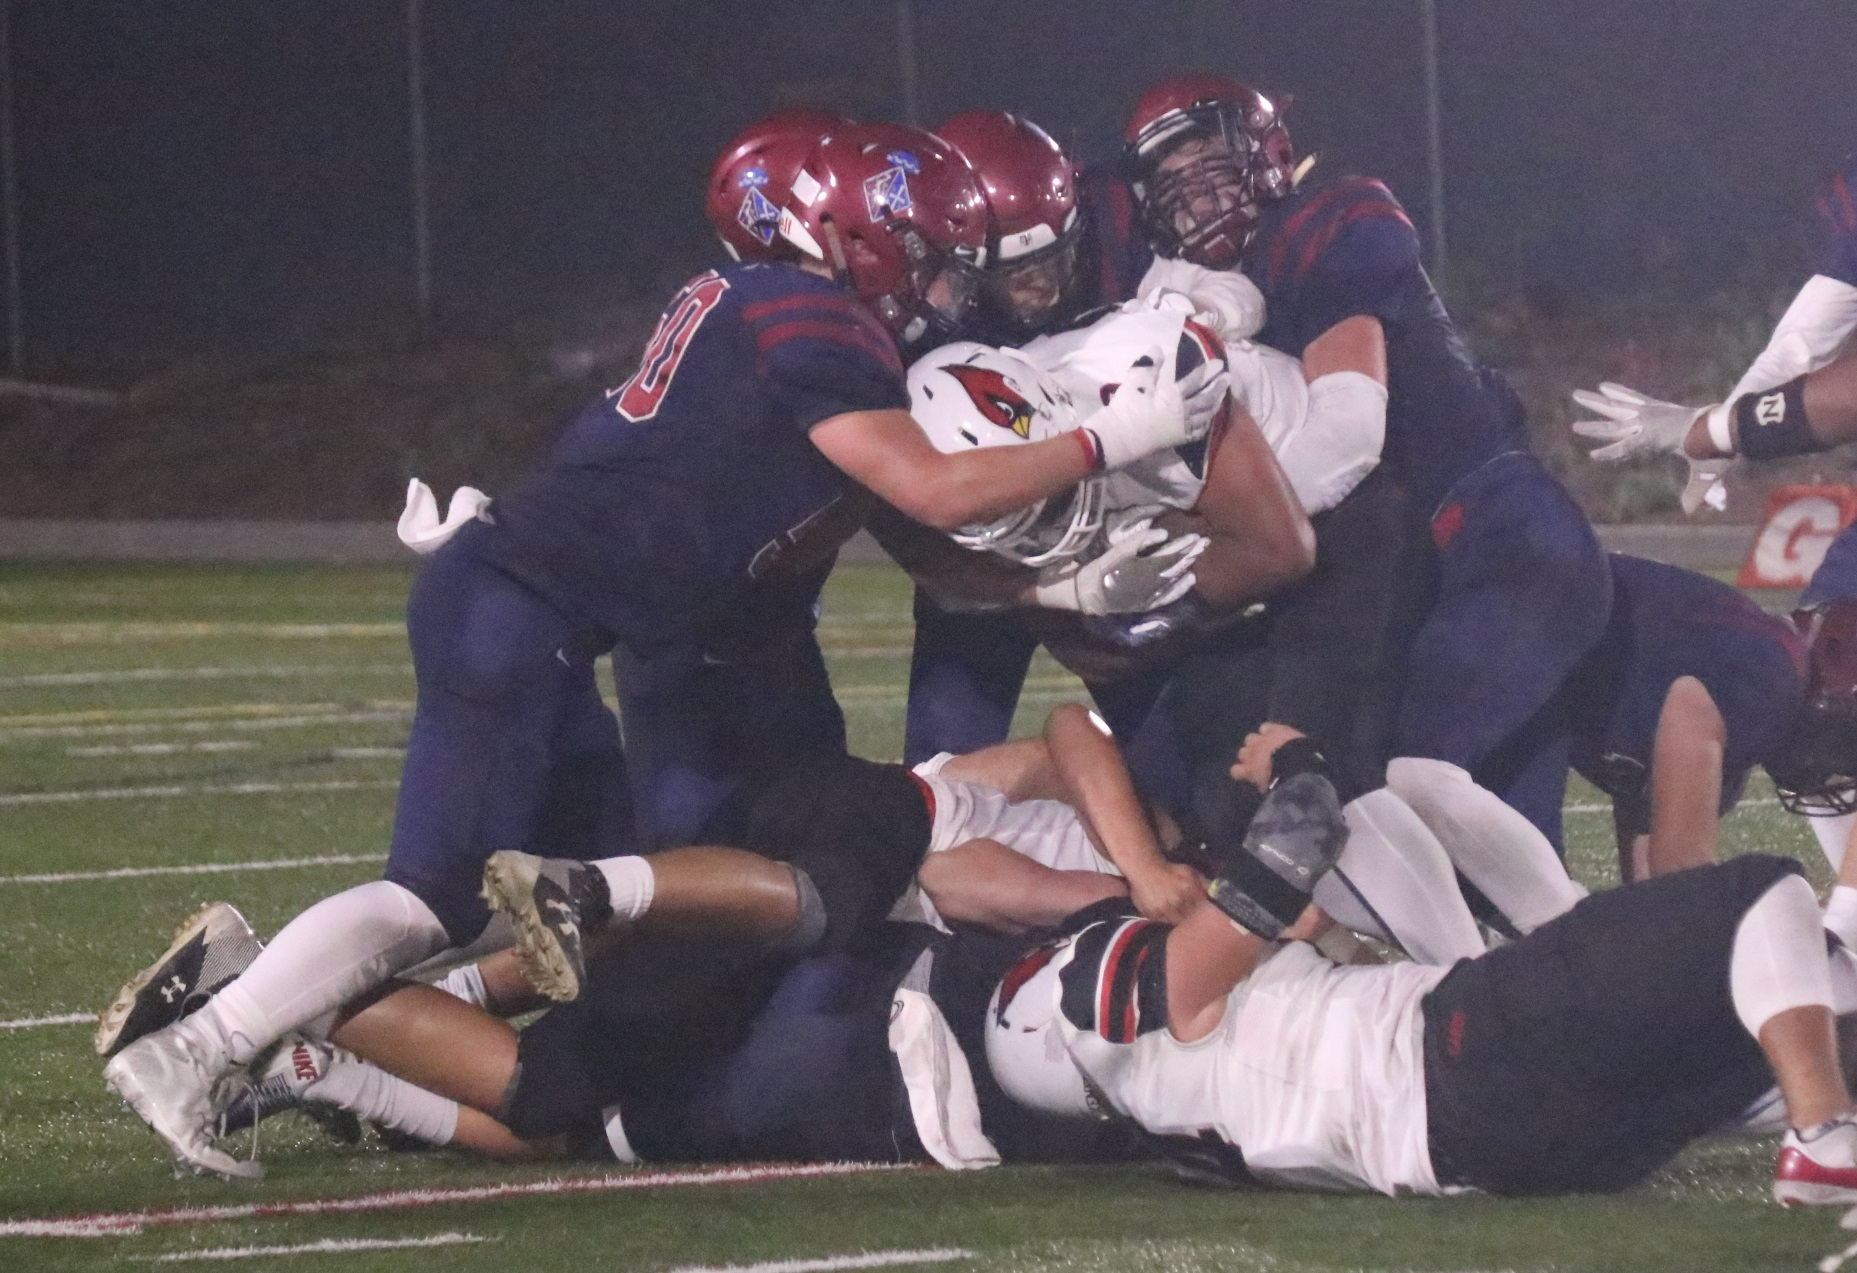 St. Margaret's defense swarms a Bishop Diego runner. Photo: Zach Cavanagh